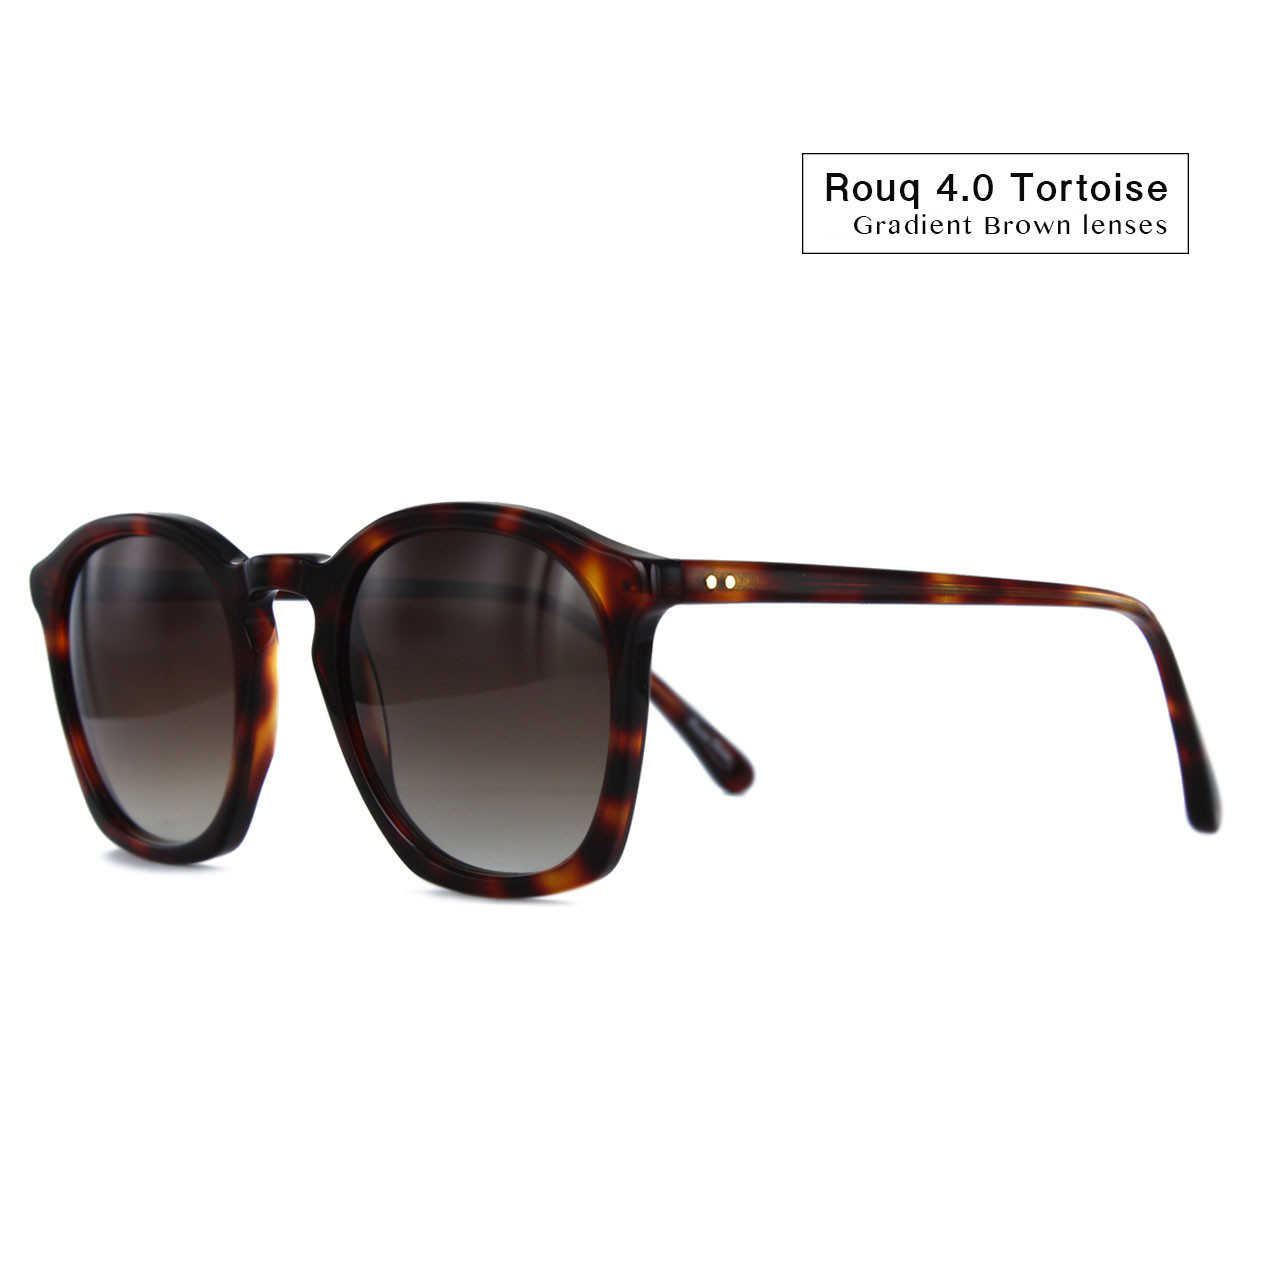 Rouq 4.0 Tortoise with Gradient Brown Lenses